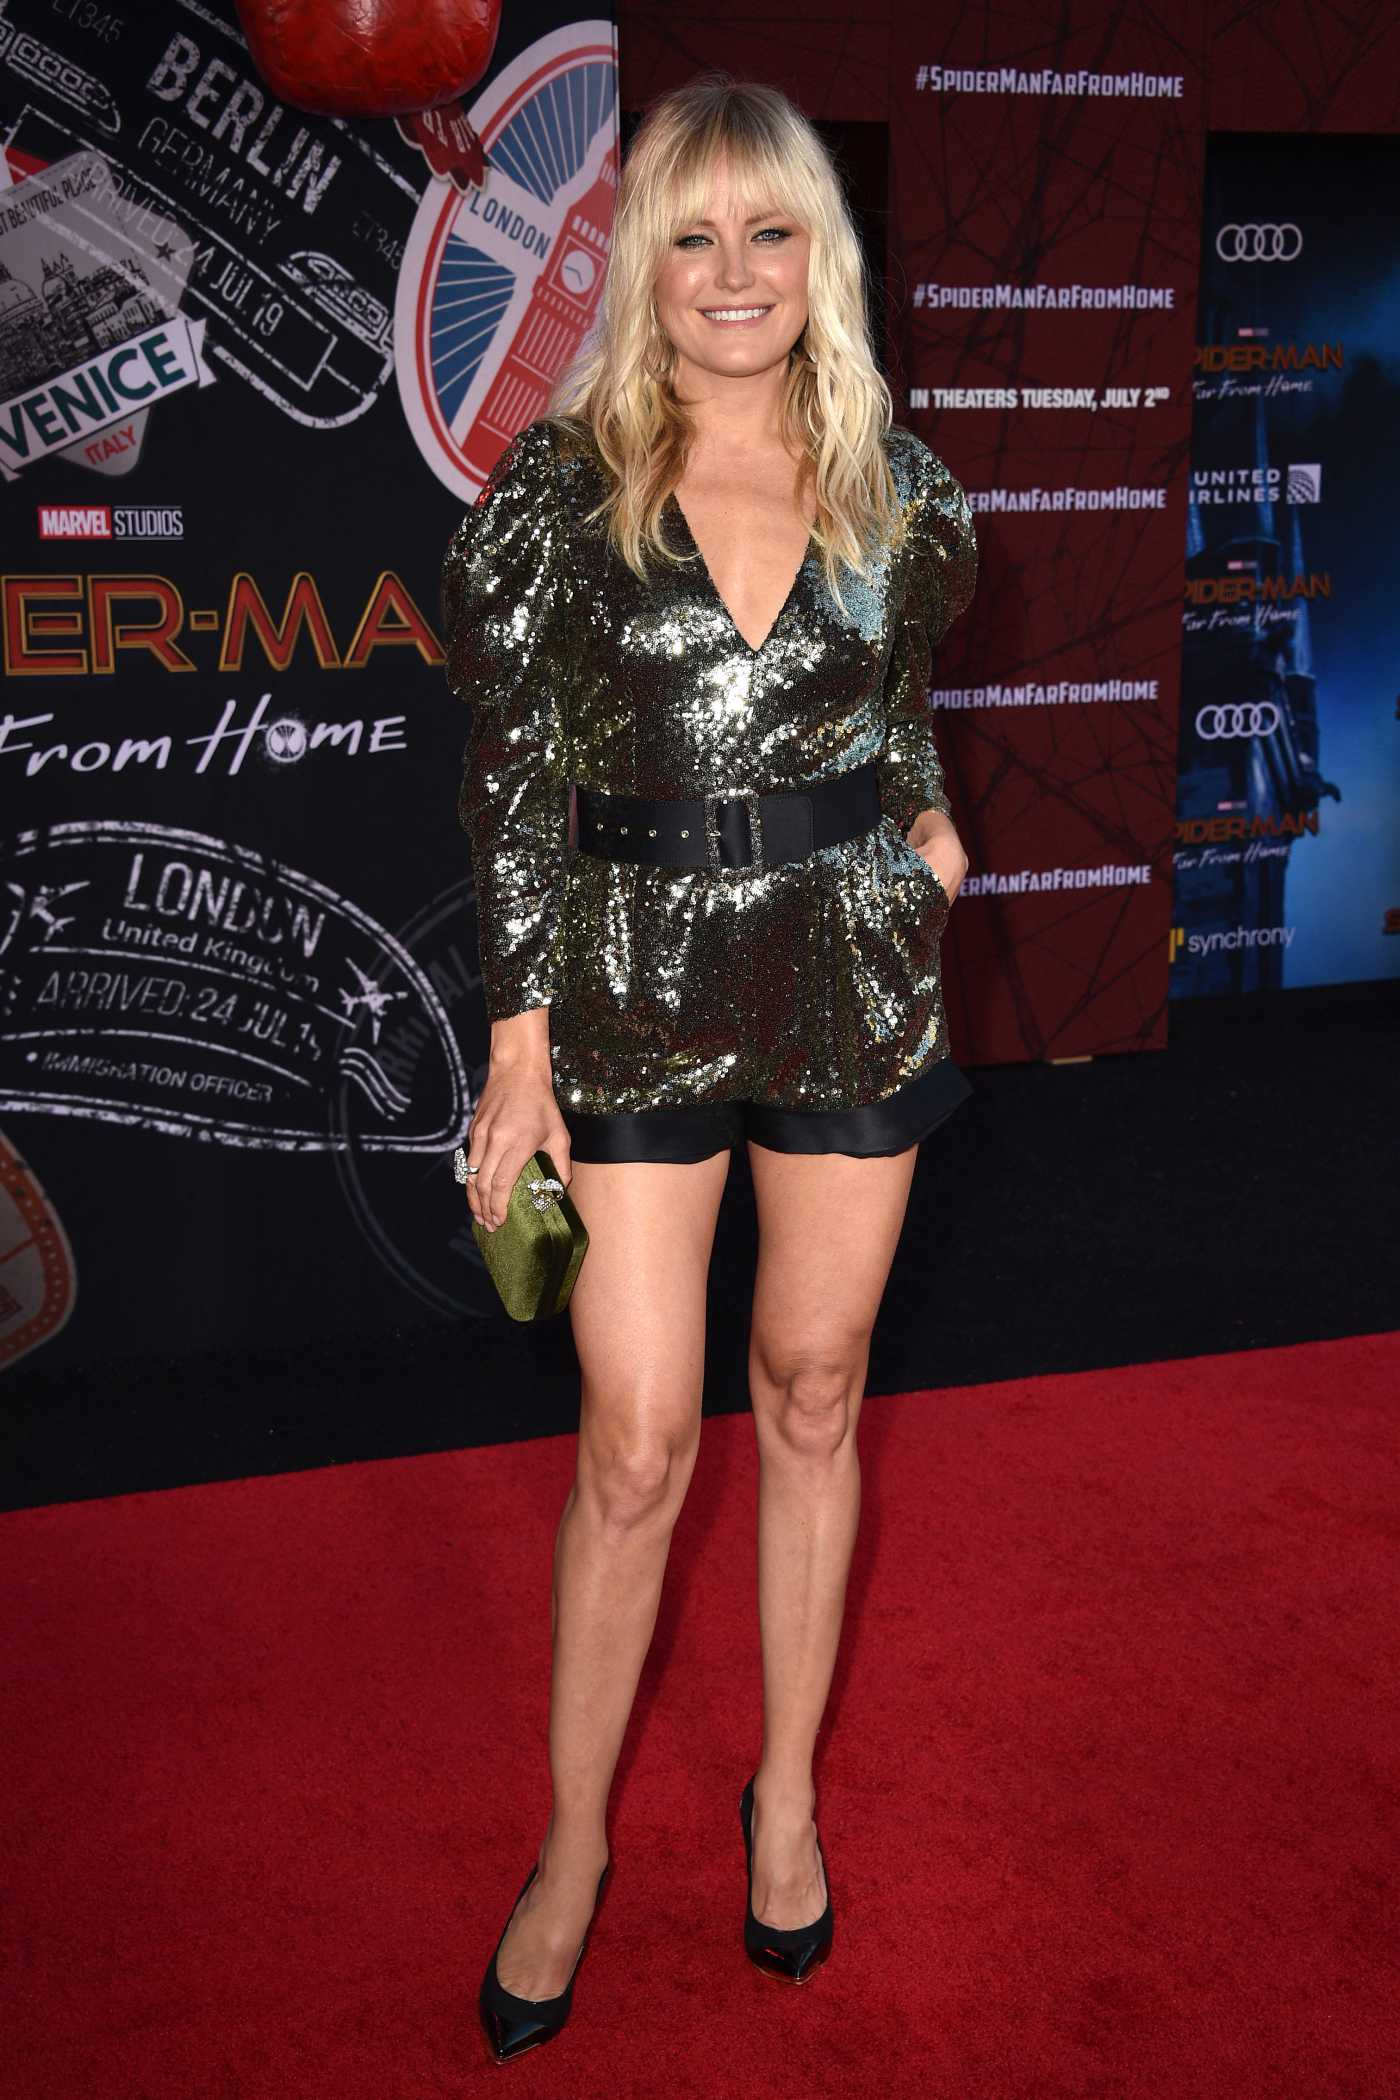 Malin Akerman Attends the Spider-Man Far From Home Premiere at TCL Chinese Theatre in Hollywood 06/26/2019